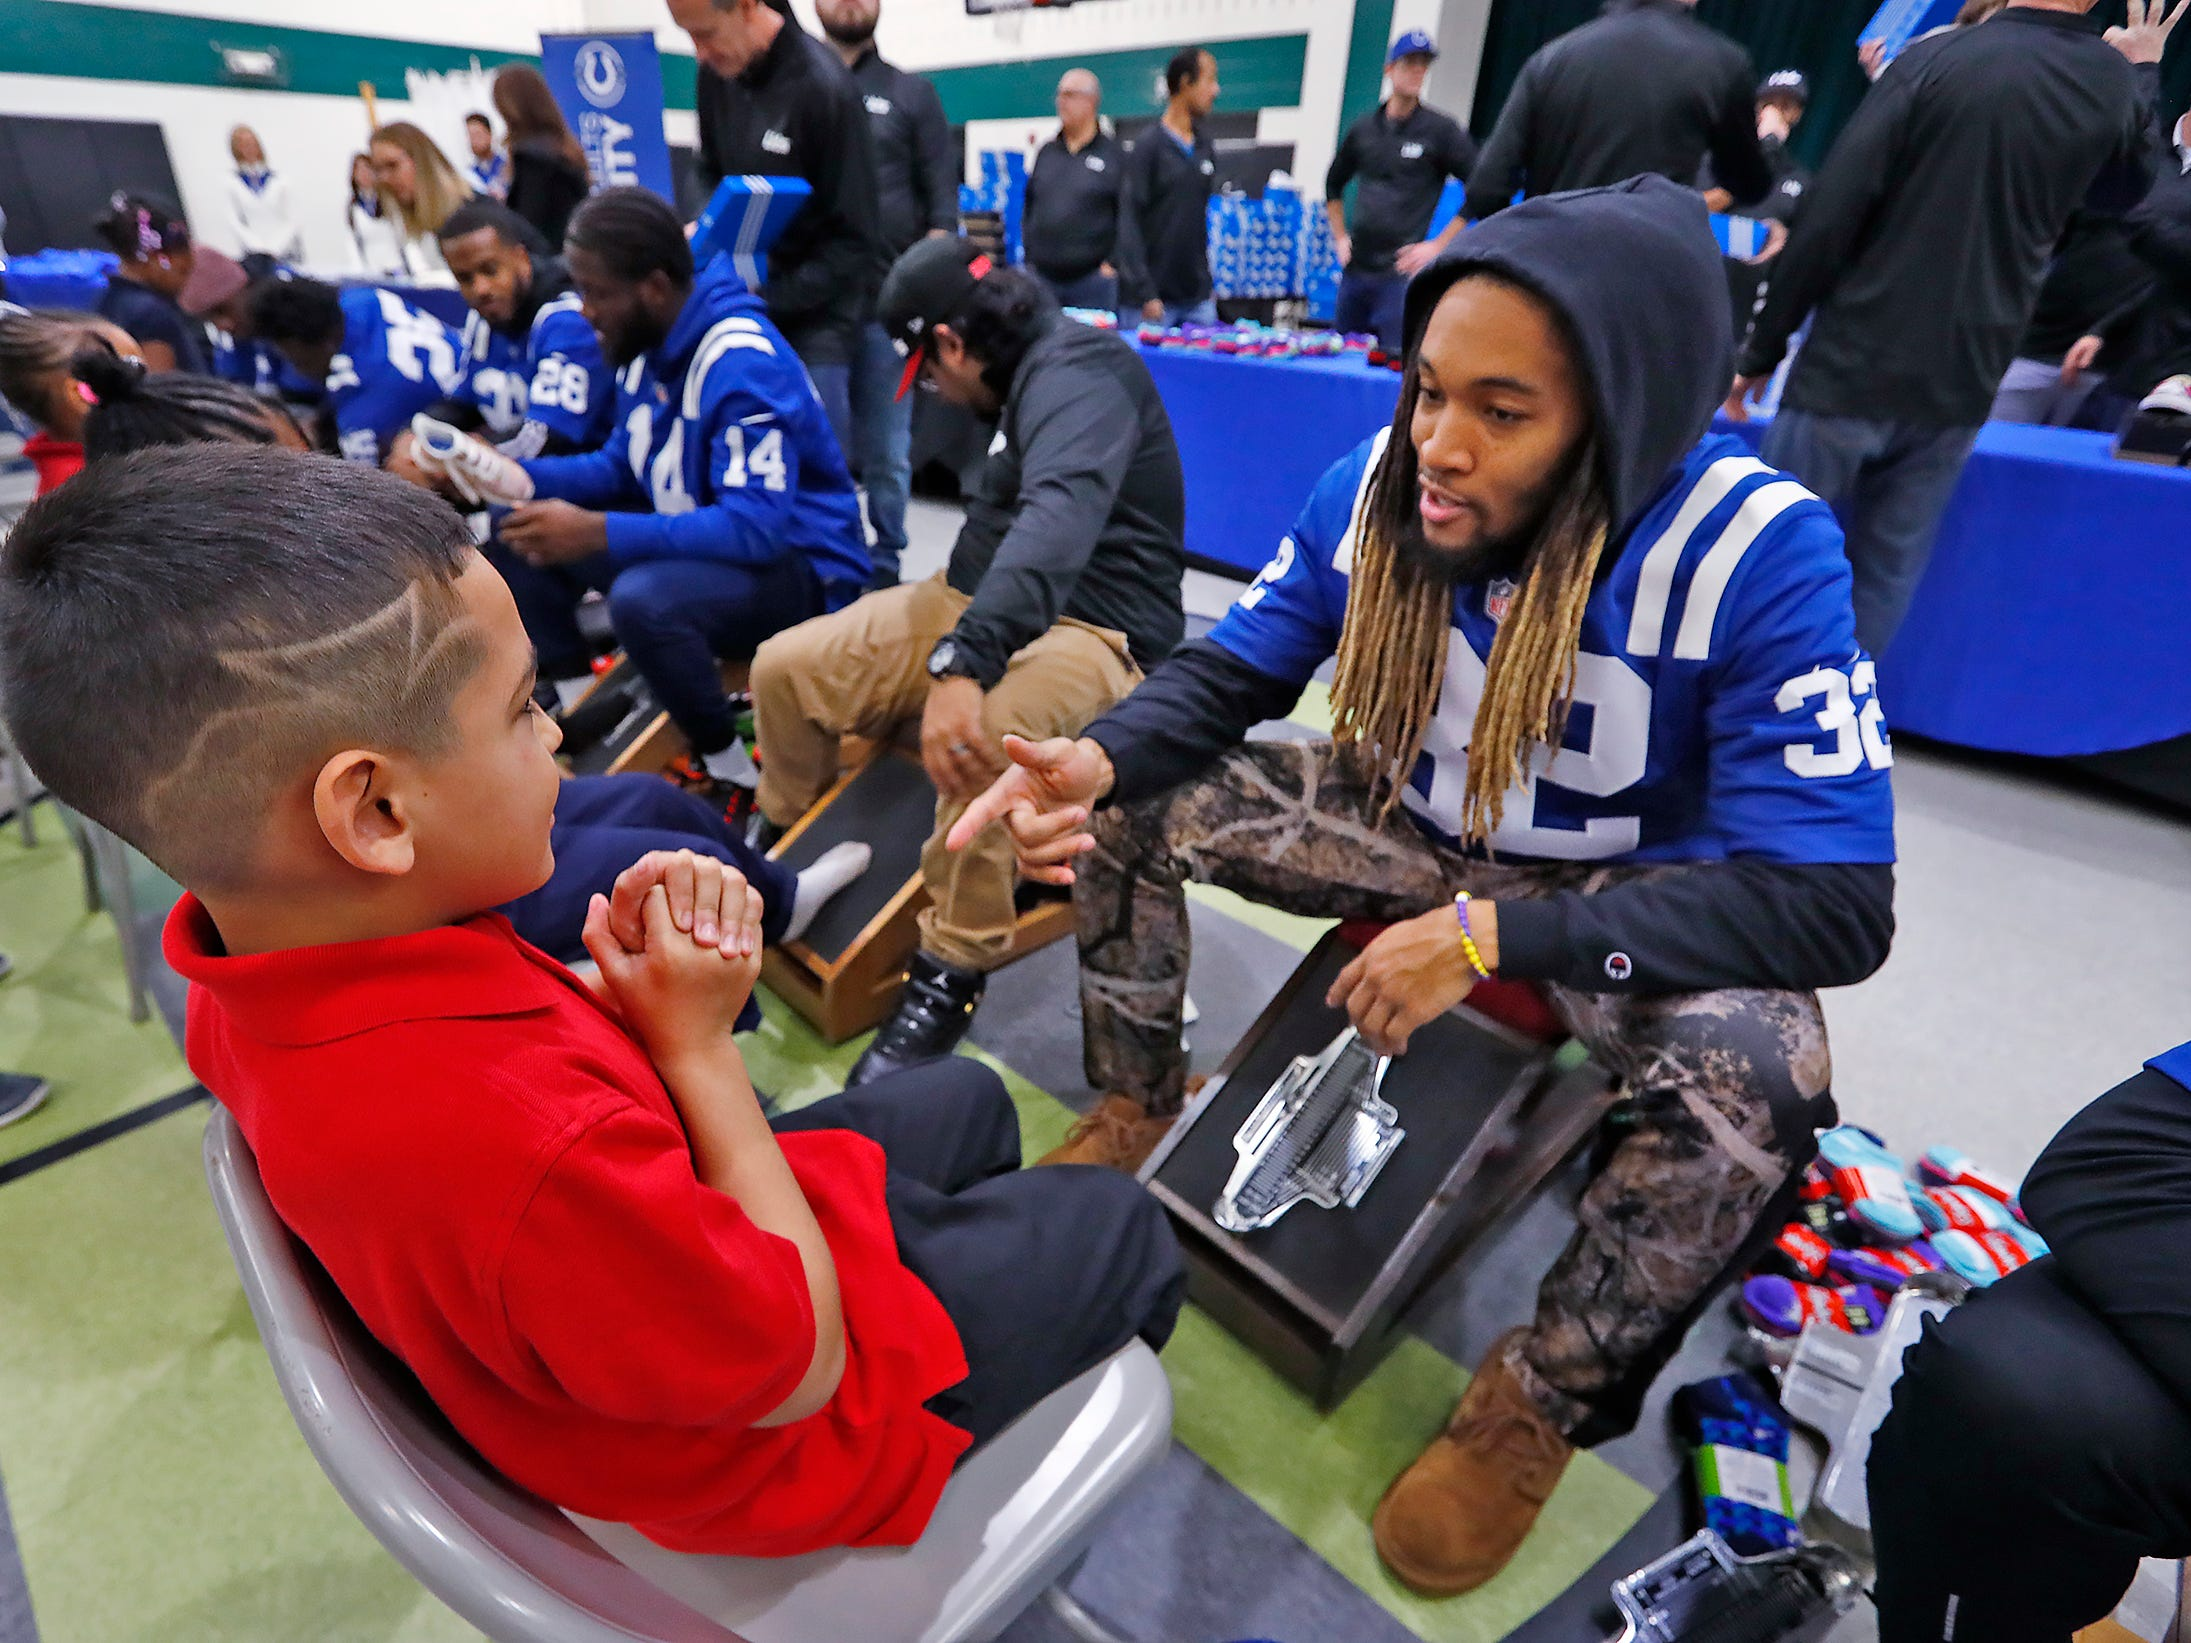 Indianapolis Colts' Jalen Collins talks with Leland Calderon, left, as he fits him for new shoes at Brookside School 54, Monday, Dec. 3, 2018.  Colts players and staff joined as LIDS Sports and its parent company Genesco fit and gave new shoes, socks, hats, and snacks to students as part of the 13th annual Cold Feet, Warm Shoes event.